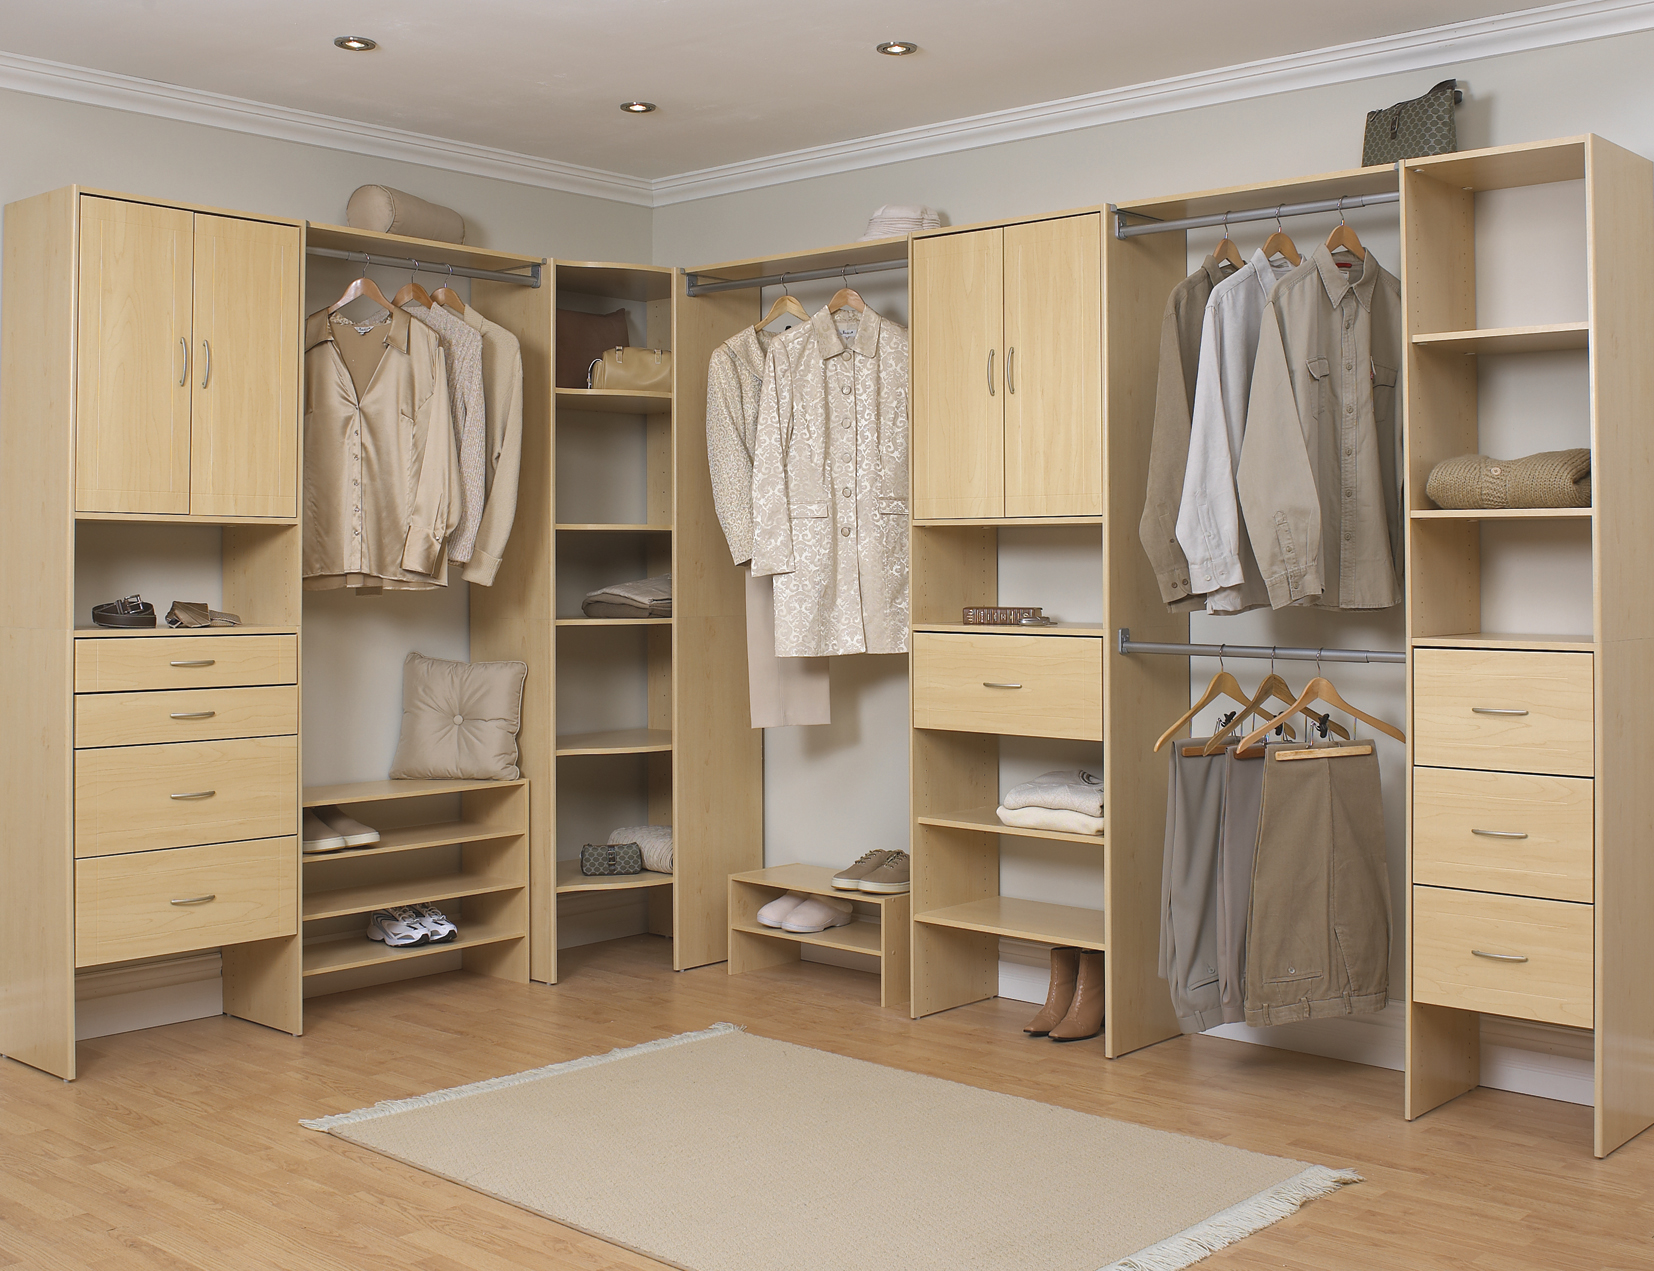 closet design of maid stewart with organizers drawers depot elegant pics closetmaid awesome organizer canada storage home martha kit